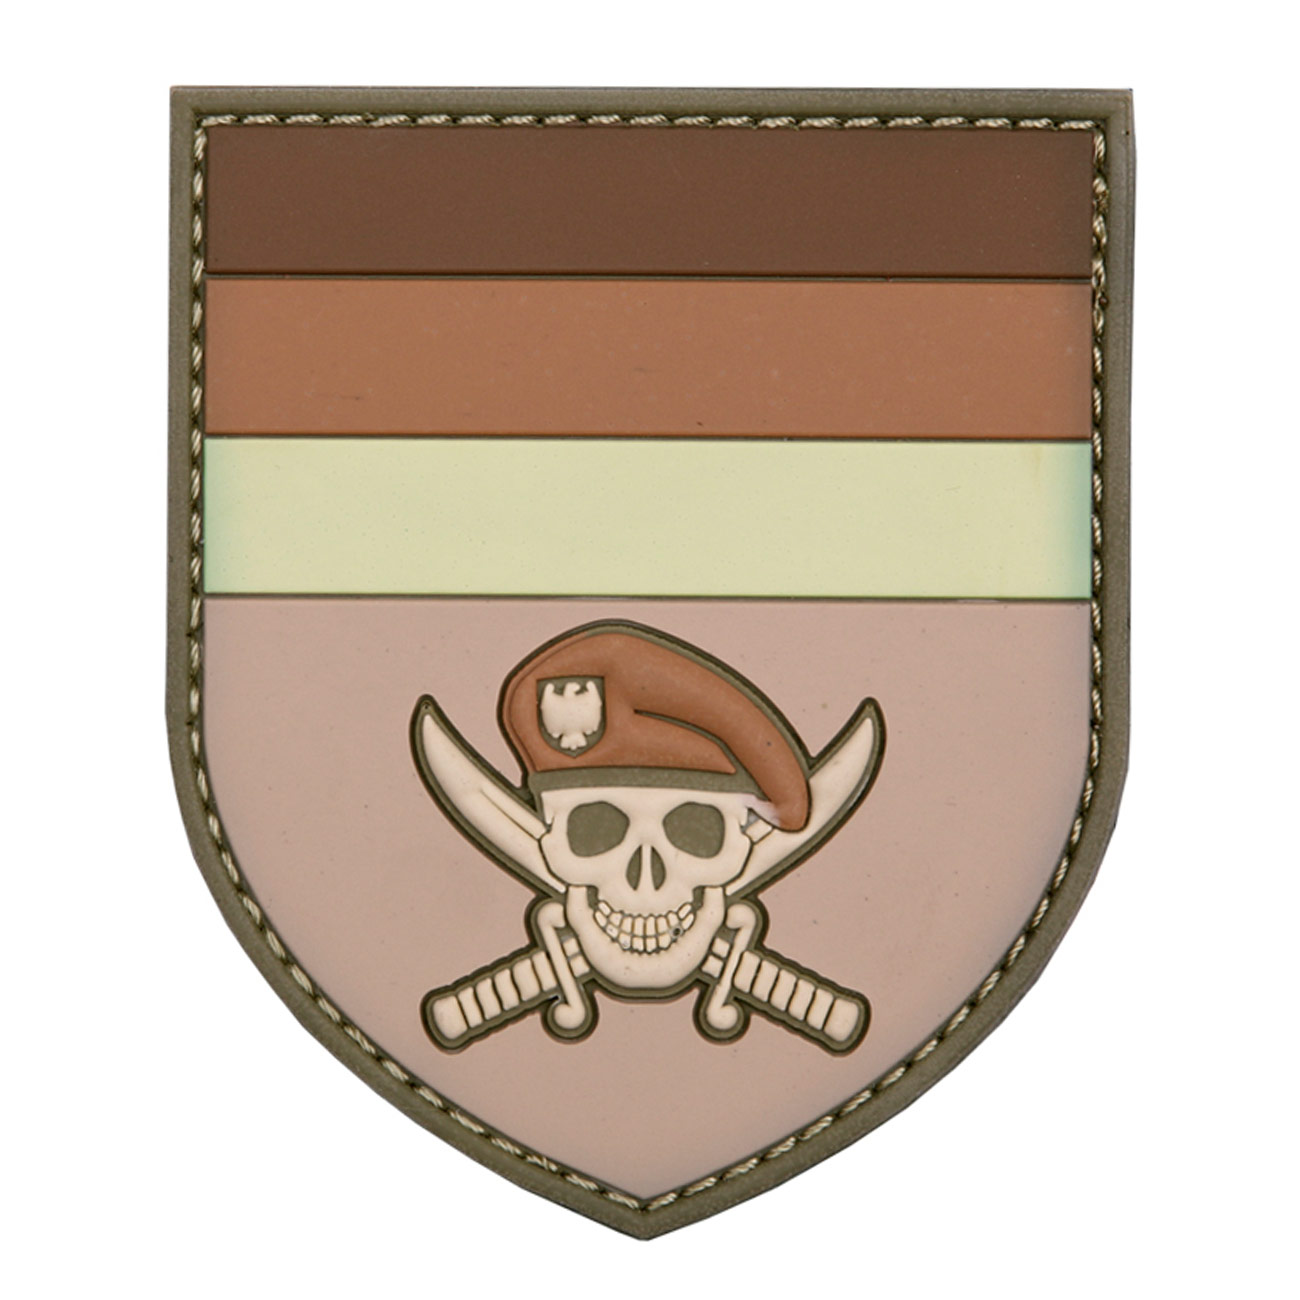 3D Rubber Patch German Commando Skull braun 0